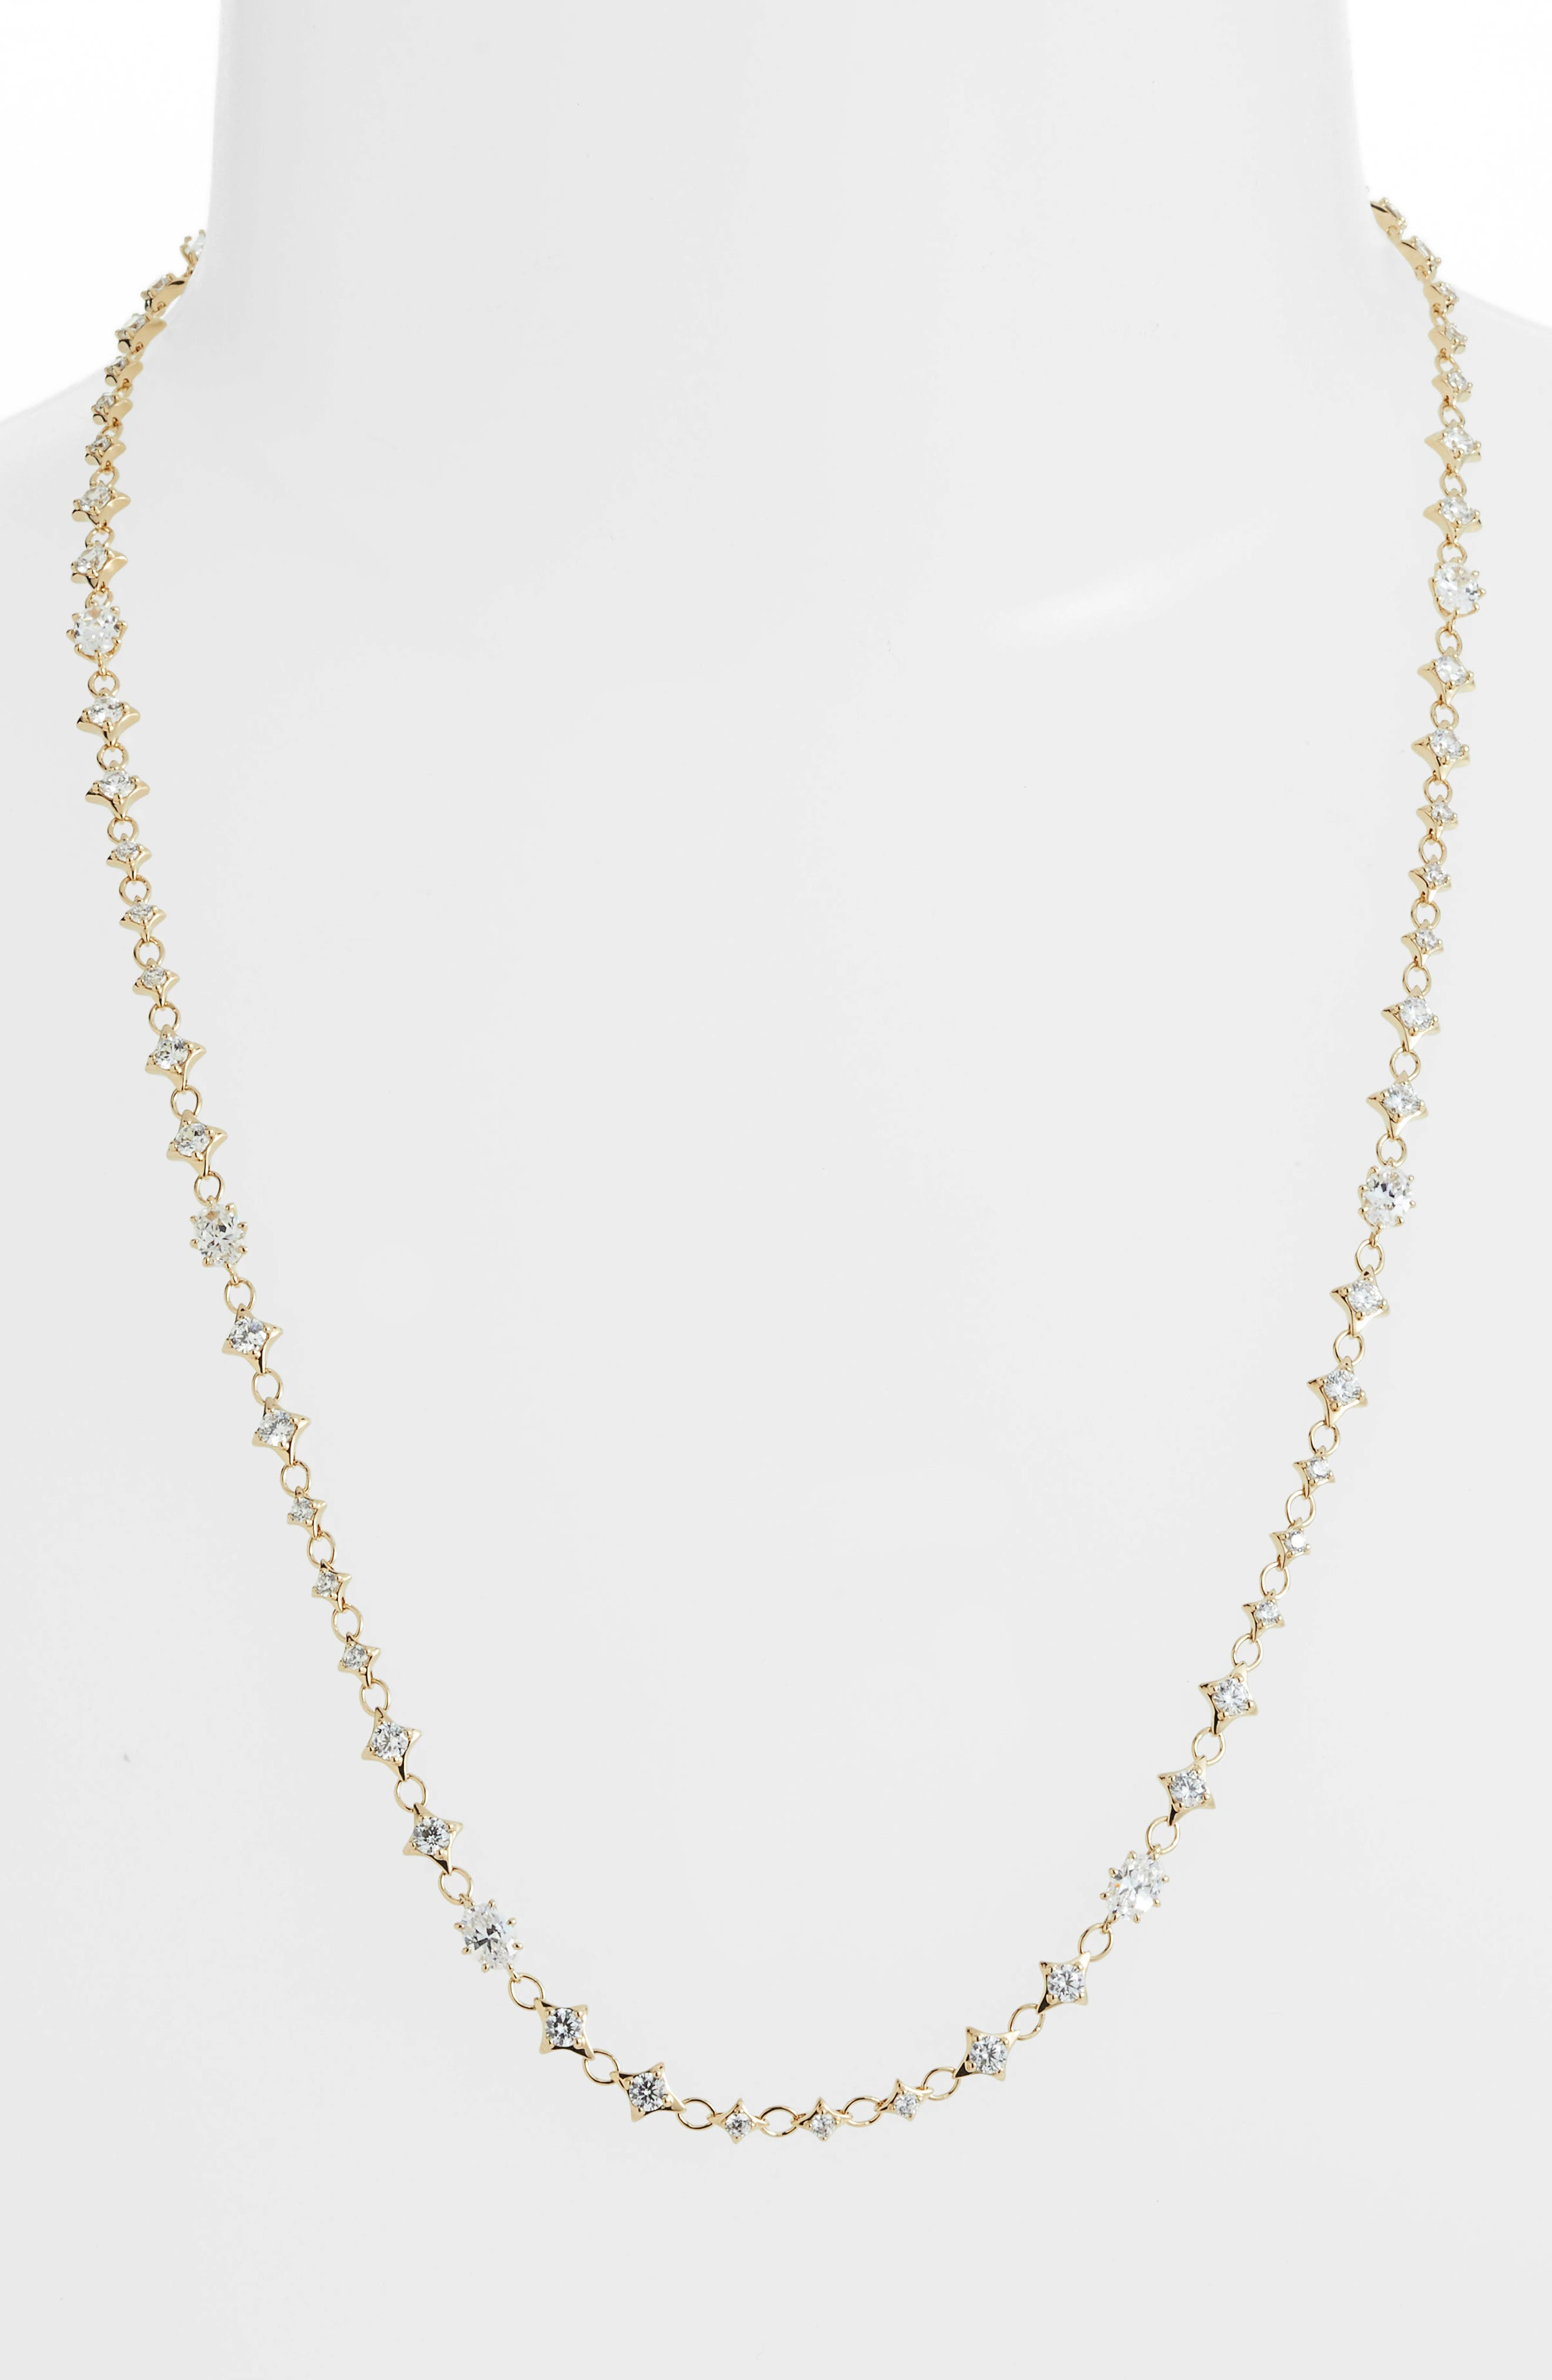 Boho Cubic Zirconia Necklace,                         Main,                         color, GOLD/ CLEAR